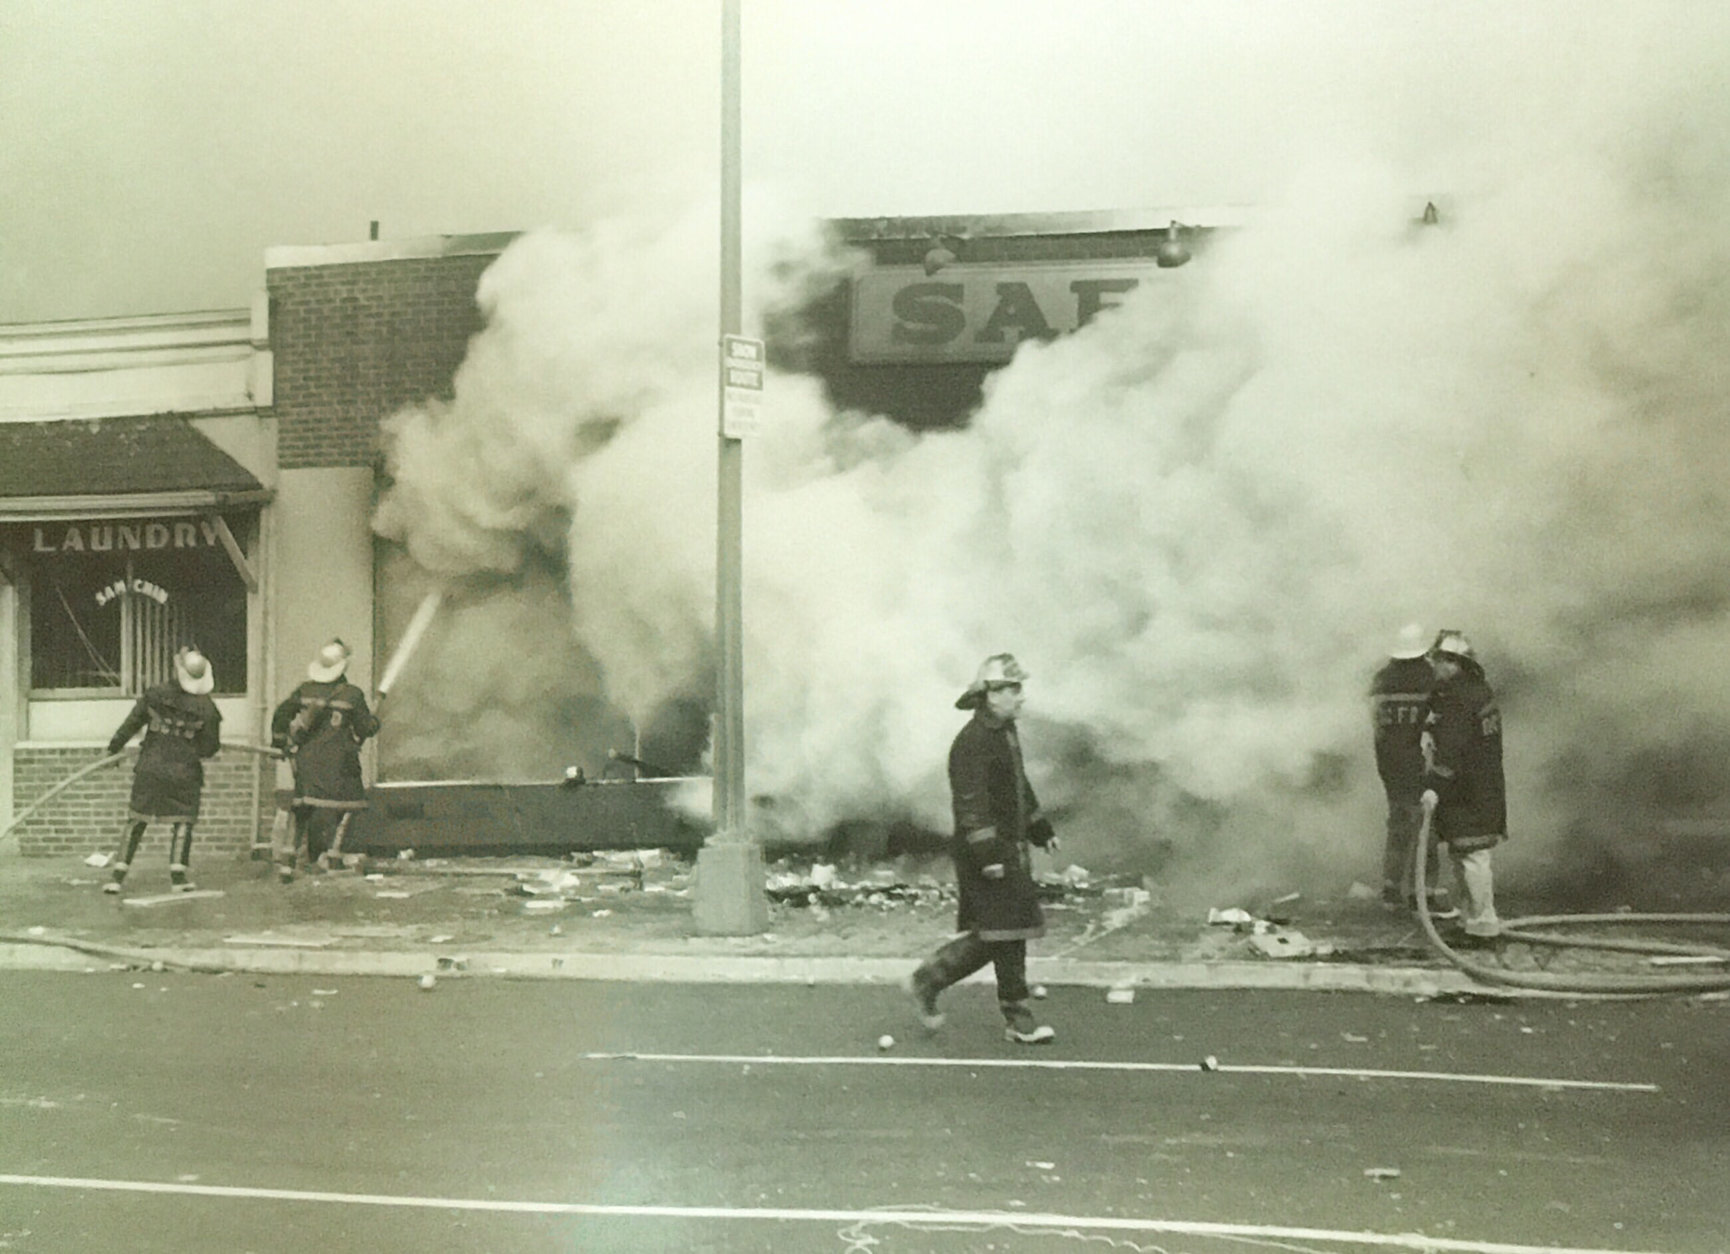 Firefigthers respond to a blaze at a Safeway on Seventh Street. (Courtesy D.C. Fire and EMS Museum)